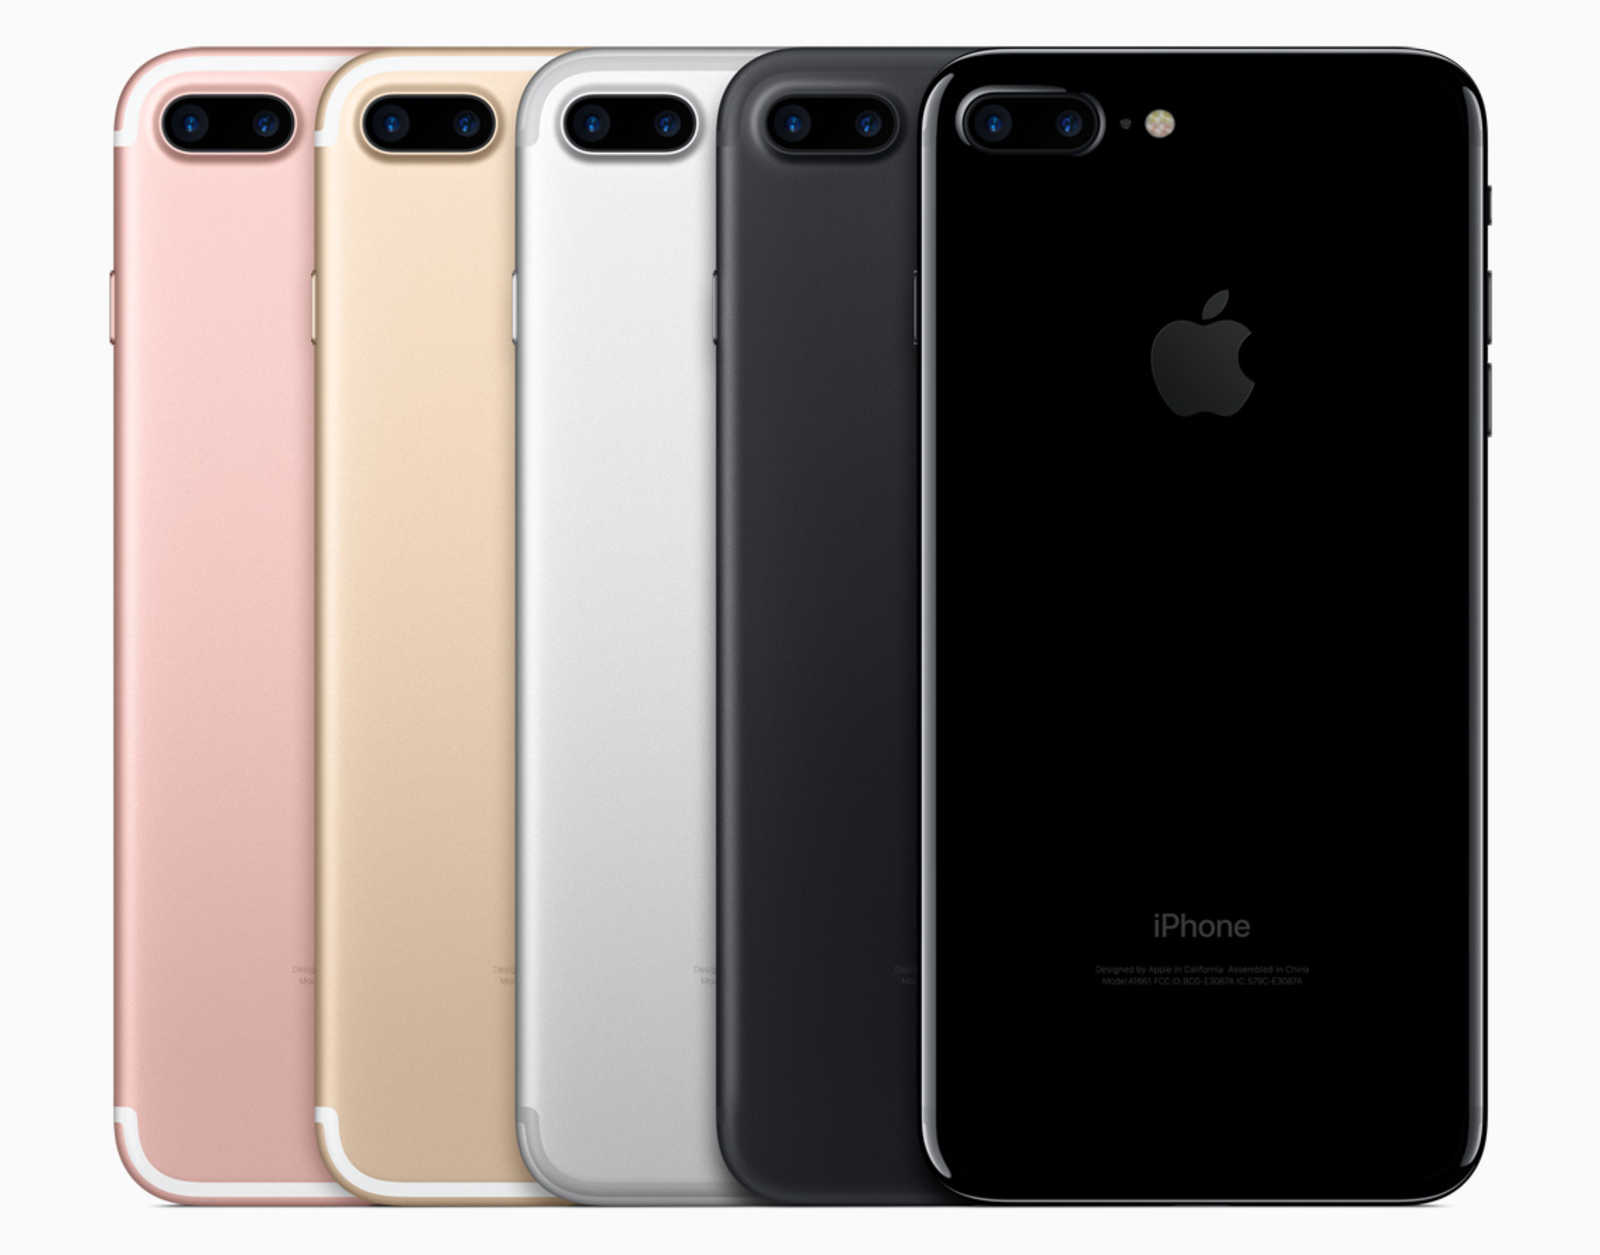 iPhone 7 und Apple Watch 2: Apple stellt neue Top-Produkte vor